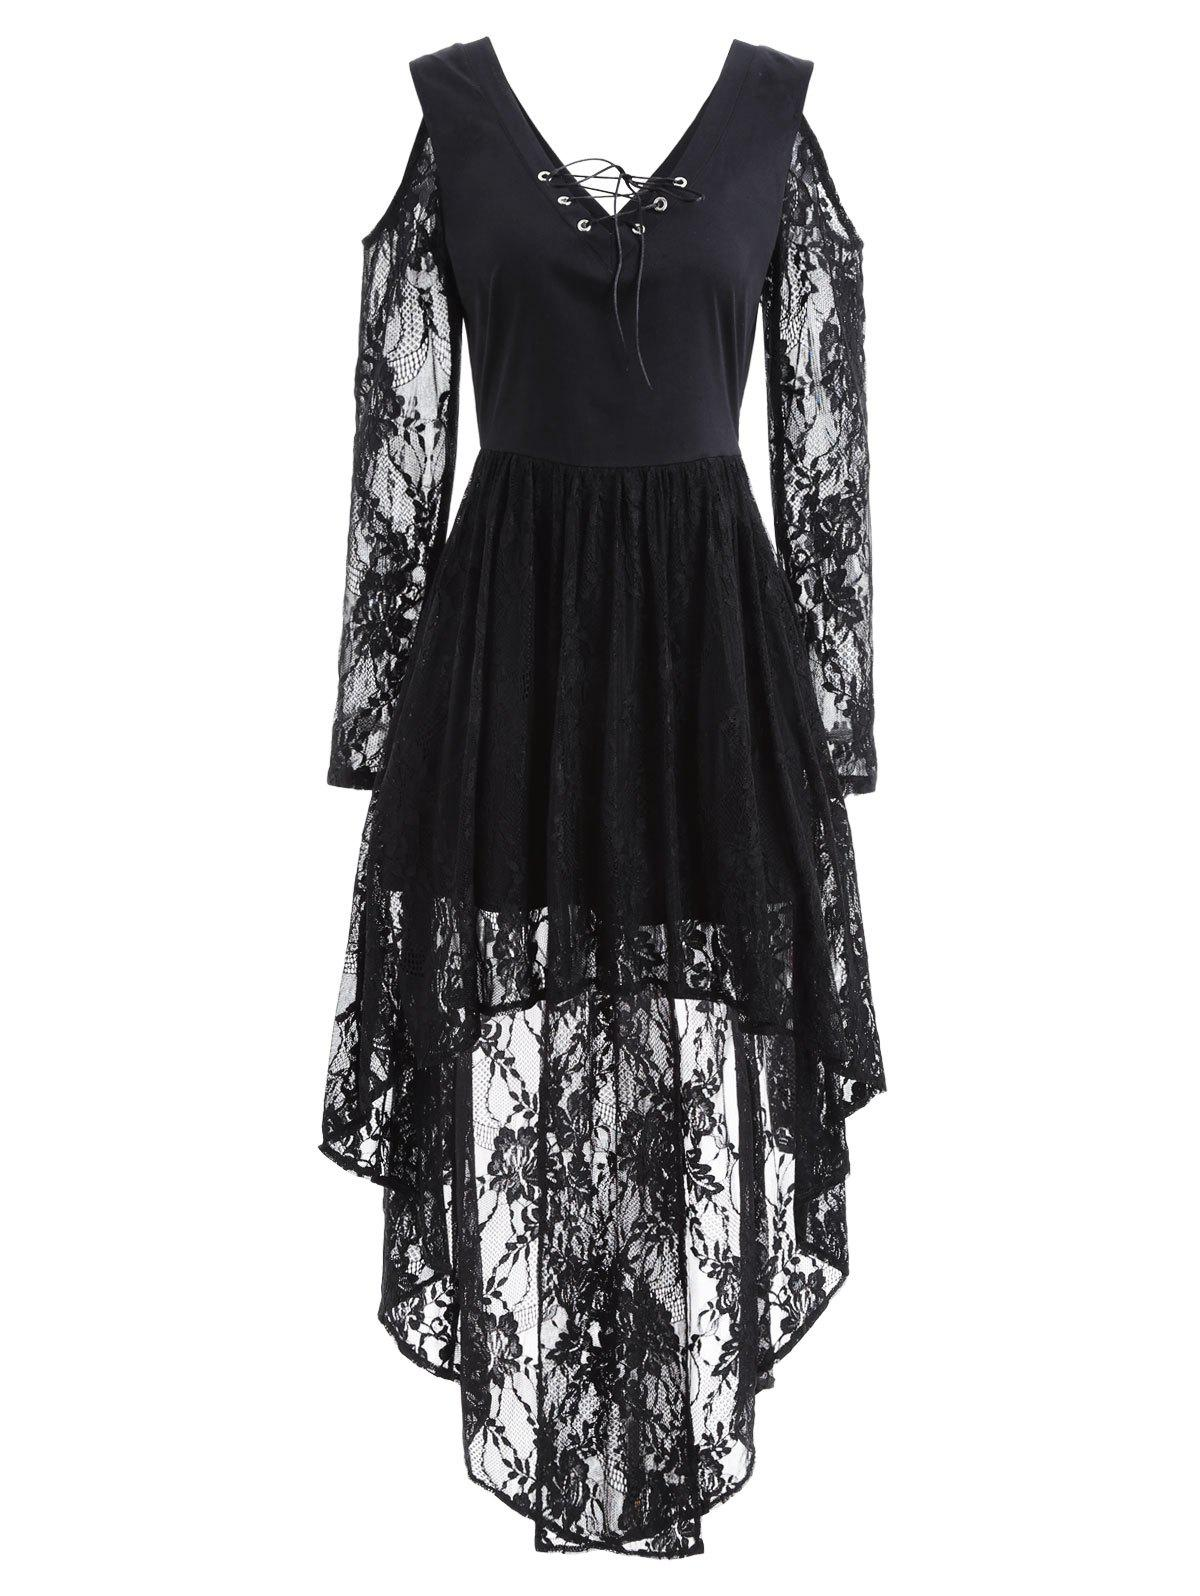 ed9950a6bb62a3 2019 Open Shoulder Lace Long Sleeve High Low Dress